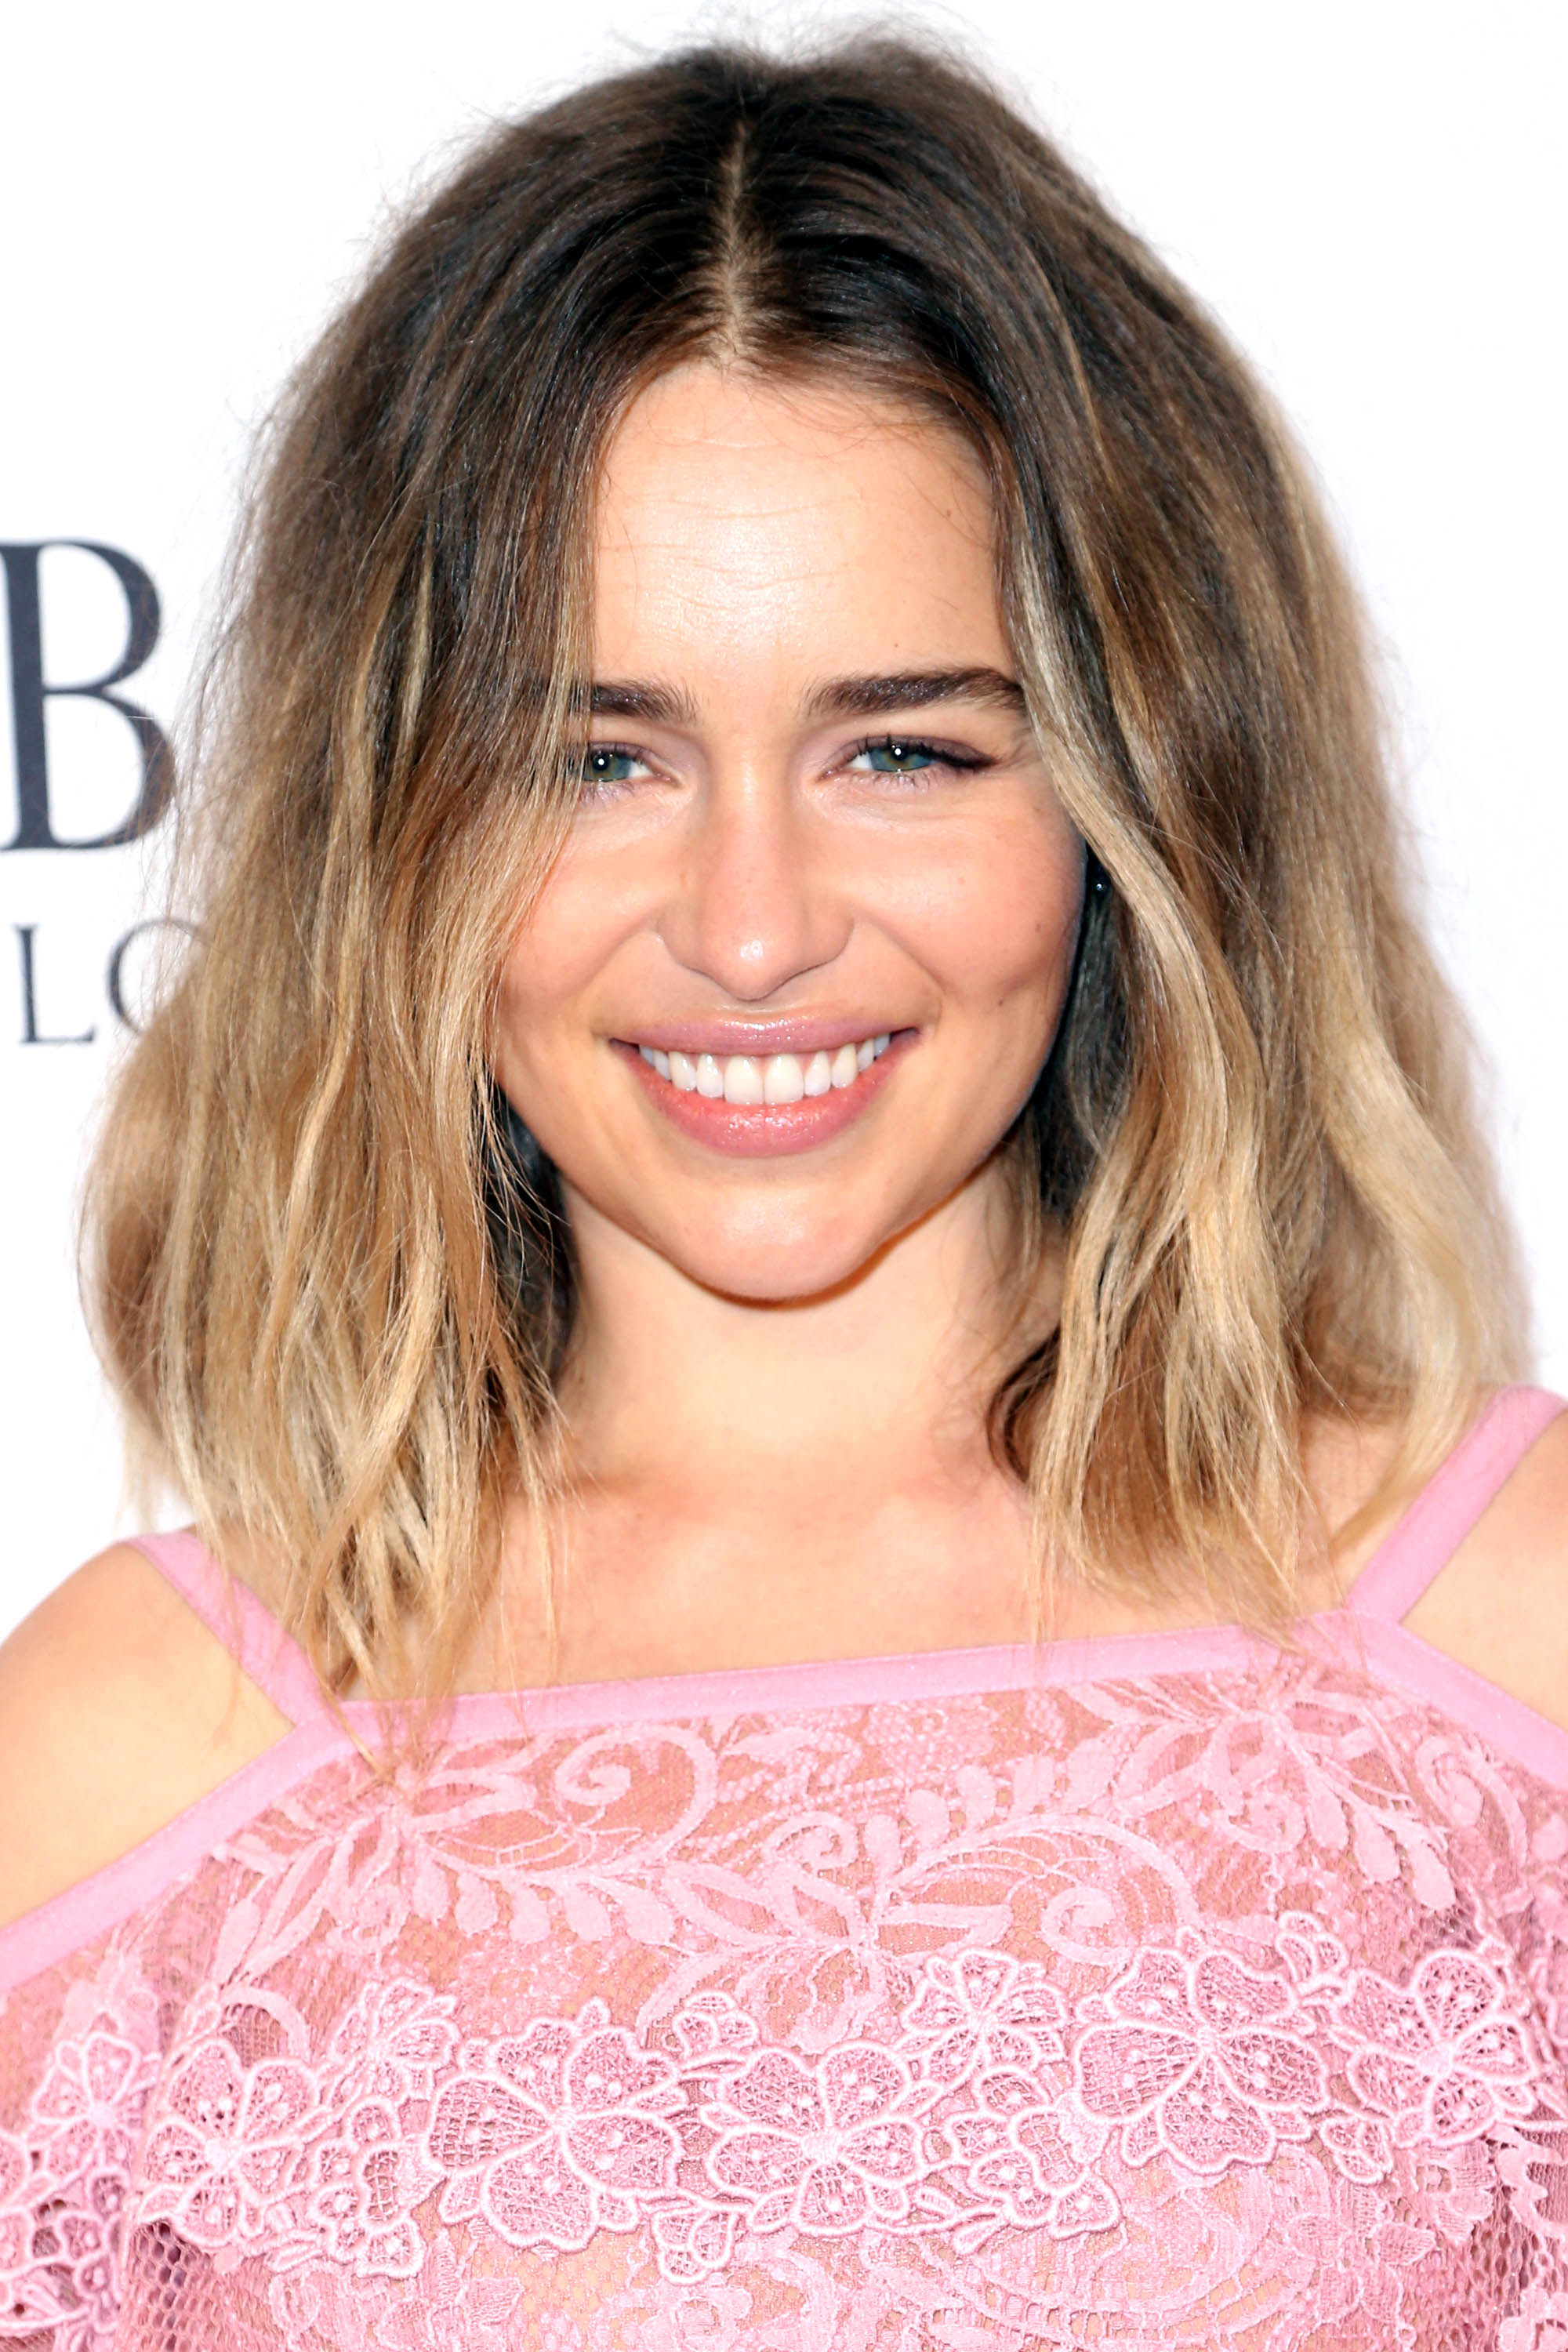 Brilliant 25 Best Long Bob Hairstyles Our Favorite Celebrity Lob Haircuts Short Hairstyles For Black Women Fulllsitofus